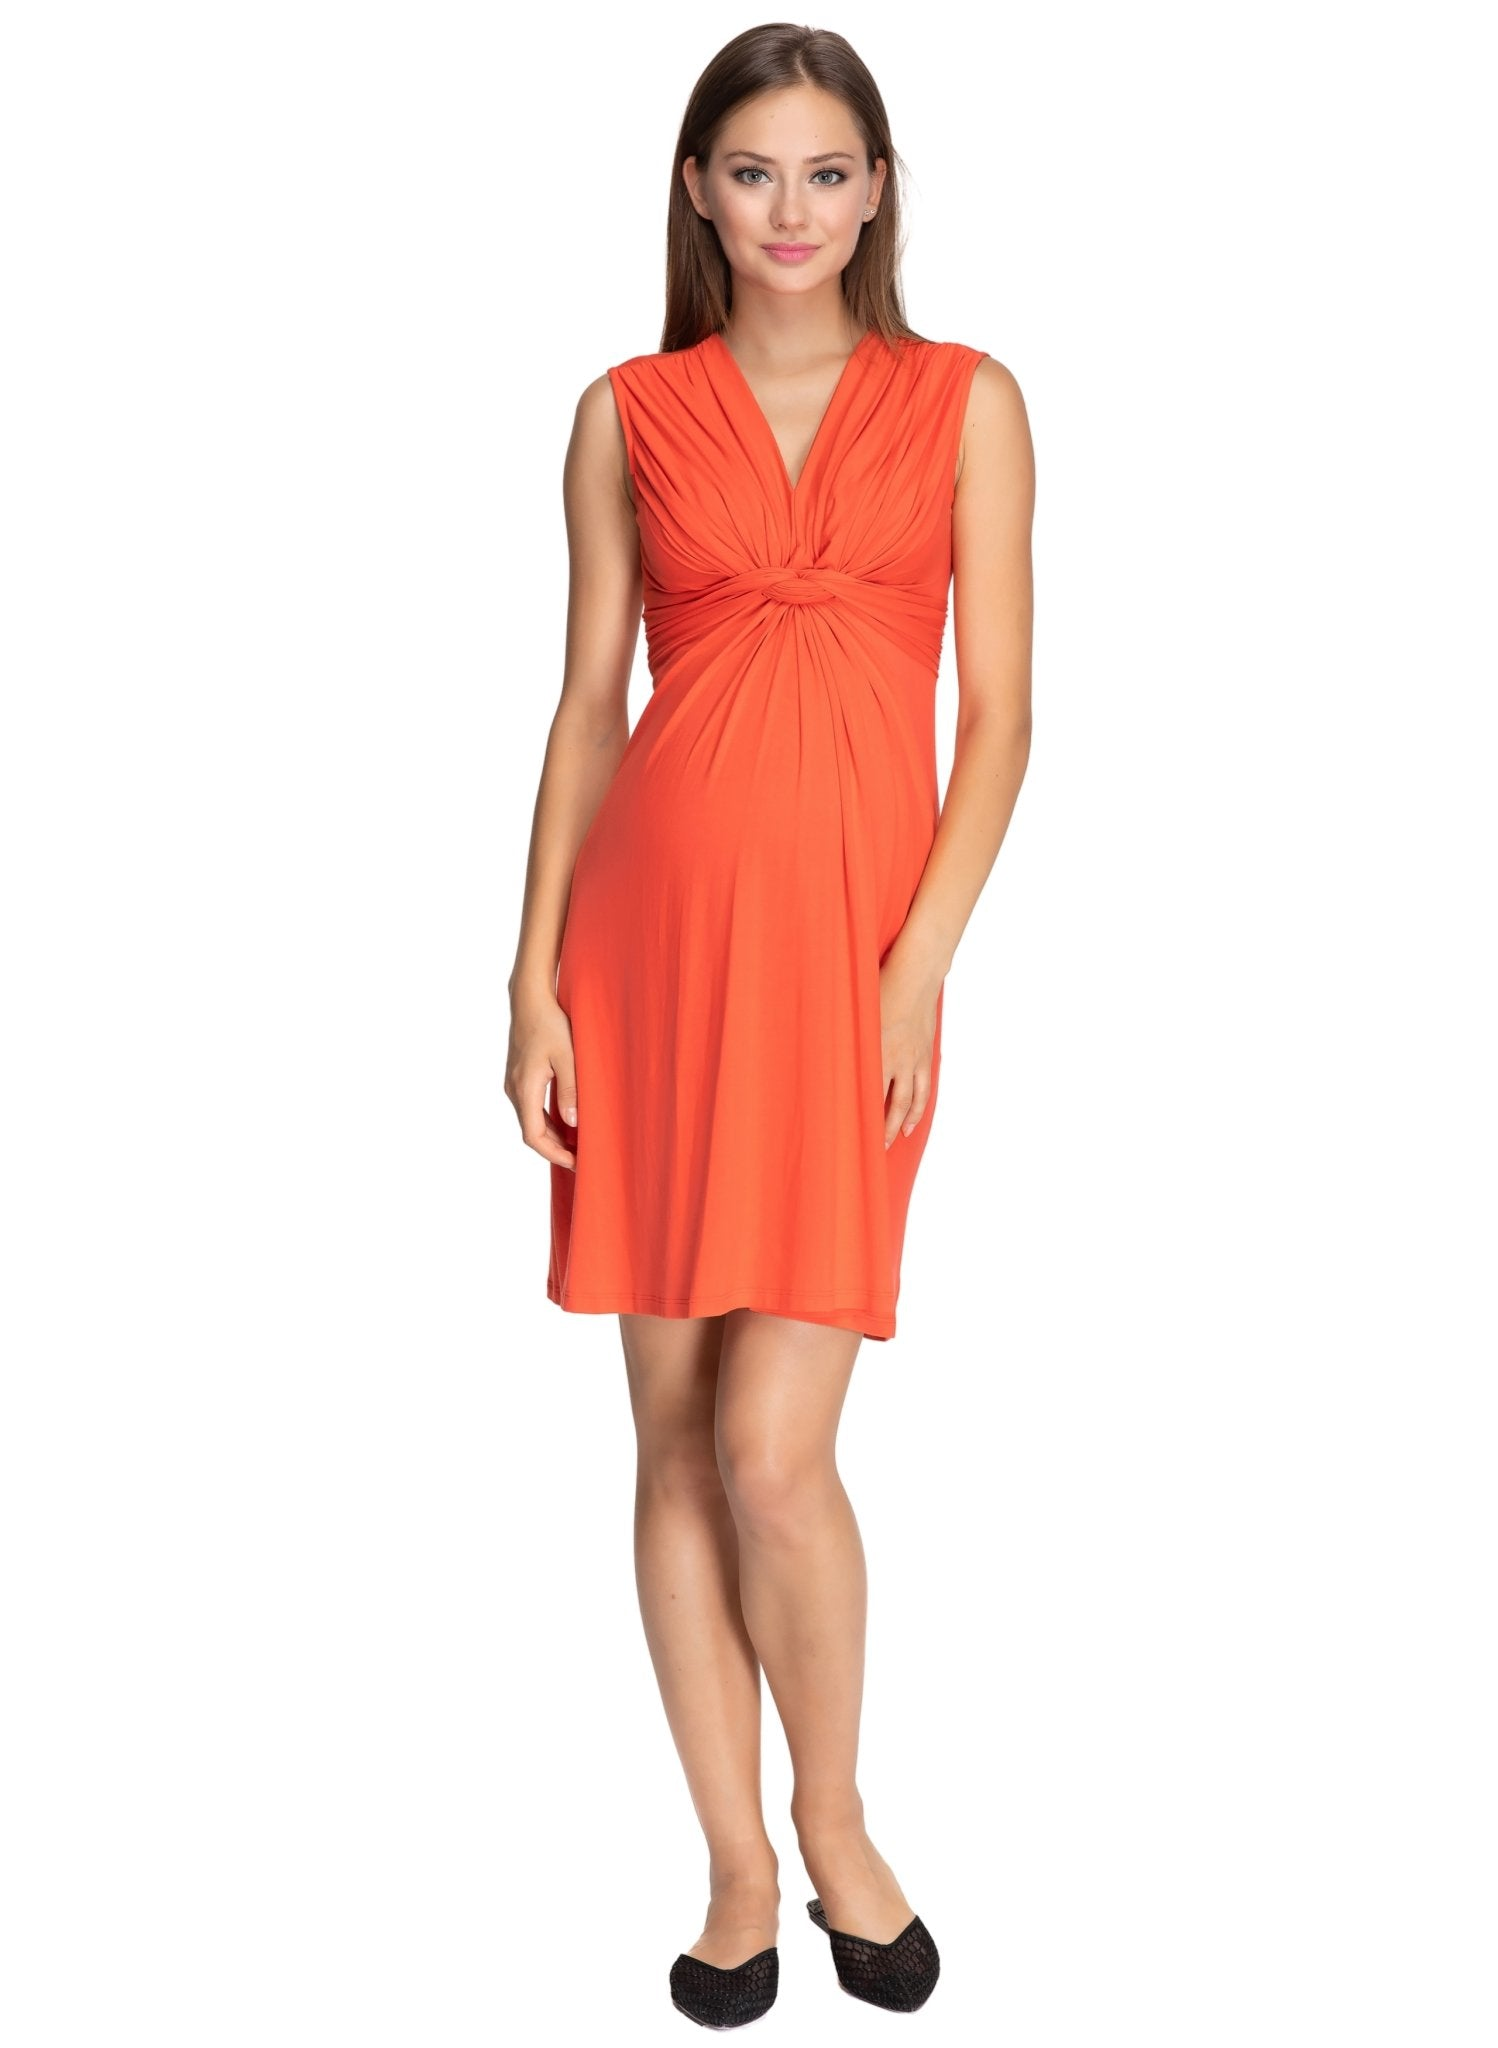 Papaver Maternity Dress - Bright Orange - Mums and Bumps